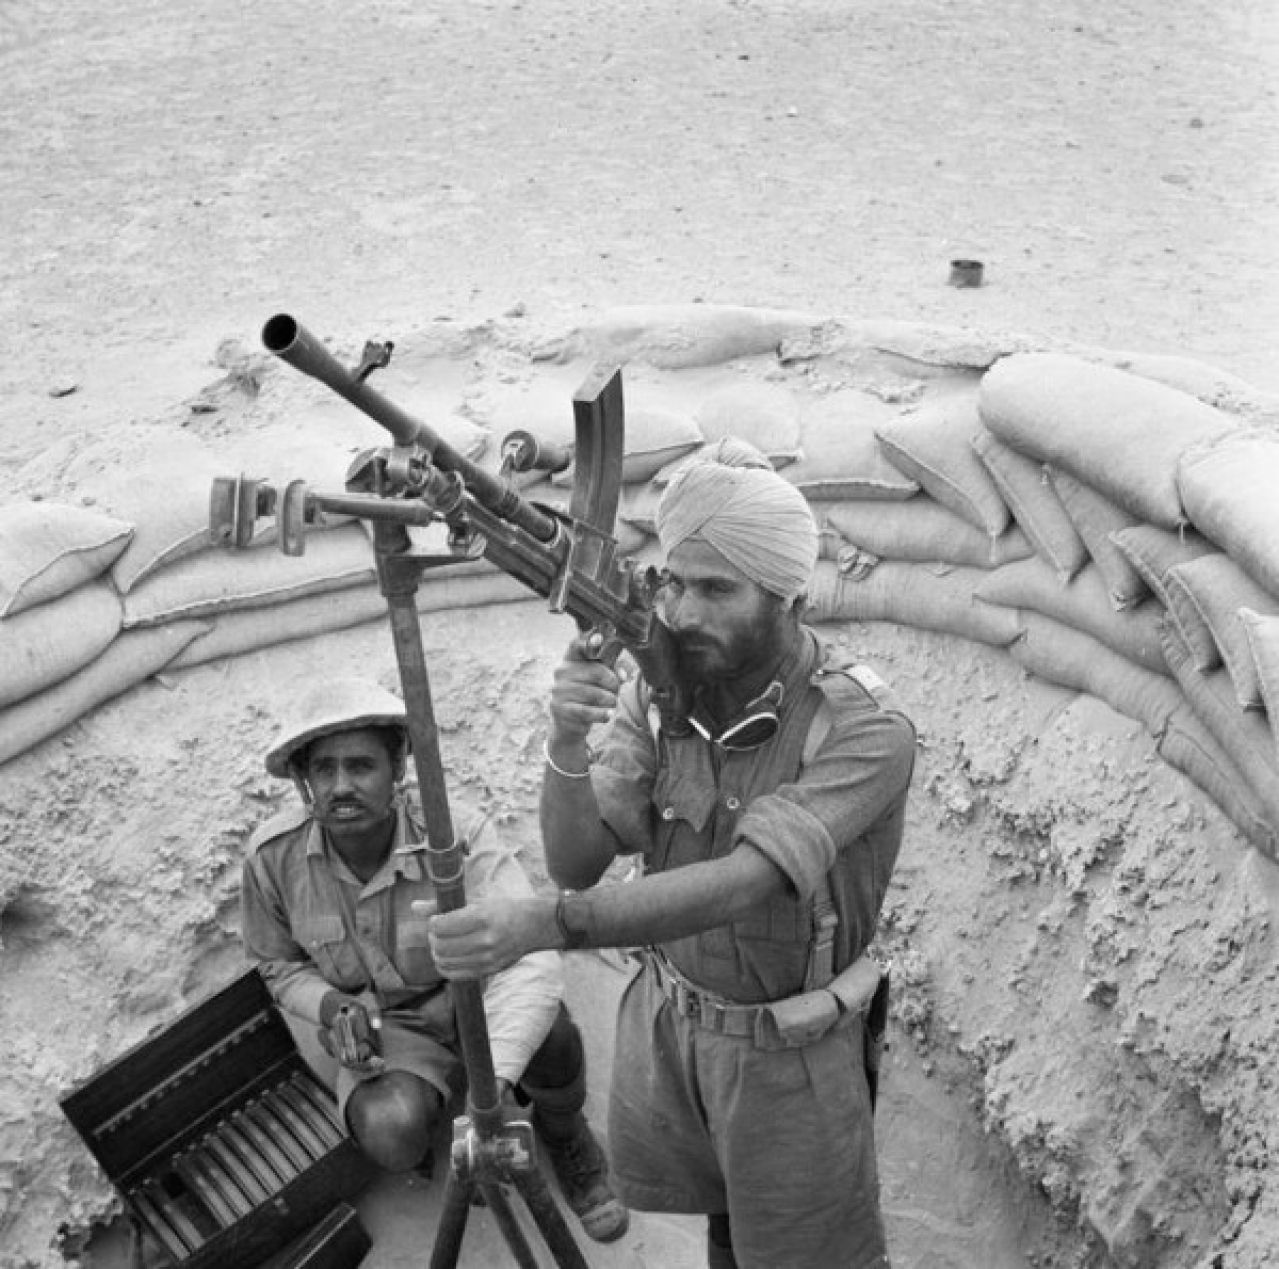 "Indian soldiers operating a Bren Gun, a standard Light Machine Gun used by Commonwealth Troops, Egypt 1941. (<a href=""https://en.wikipedia.org/wiki/Bren_light_machine_gun#/media/File:Anti-aircraft_BrenGun.jpg"">Wikipedia</a>)"